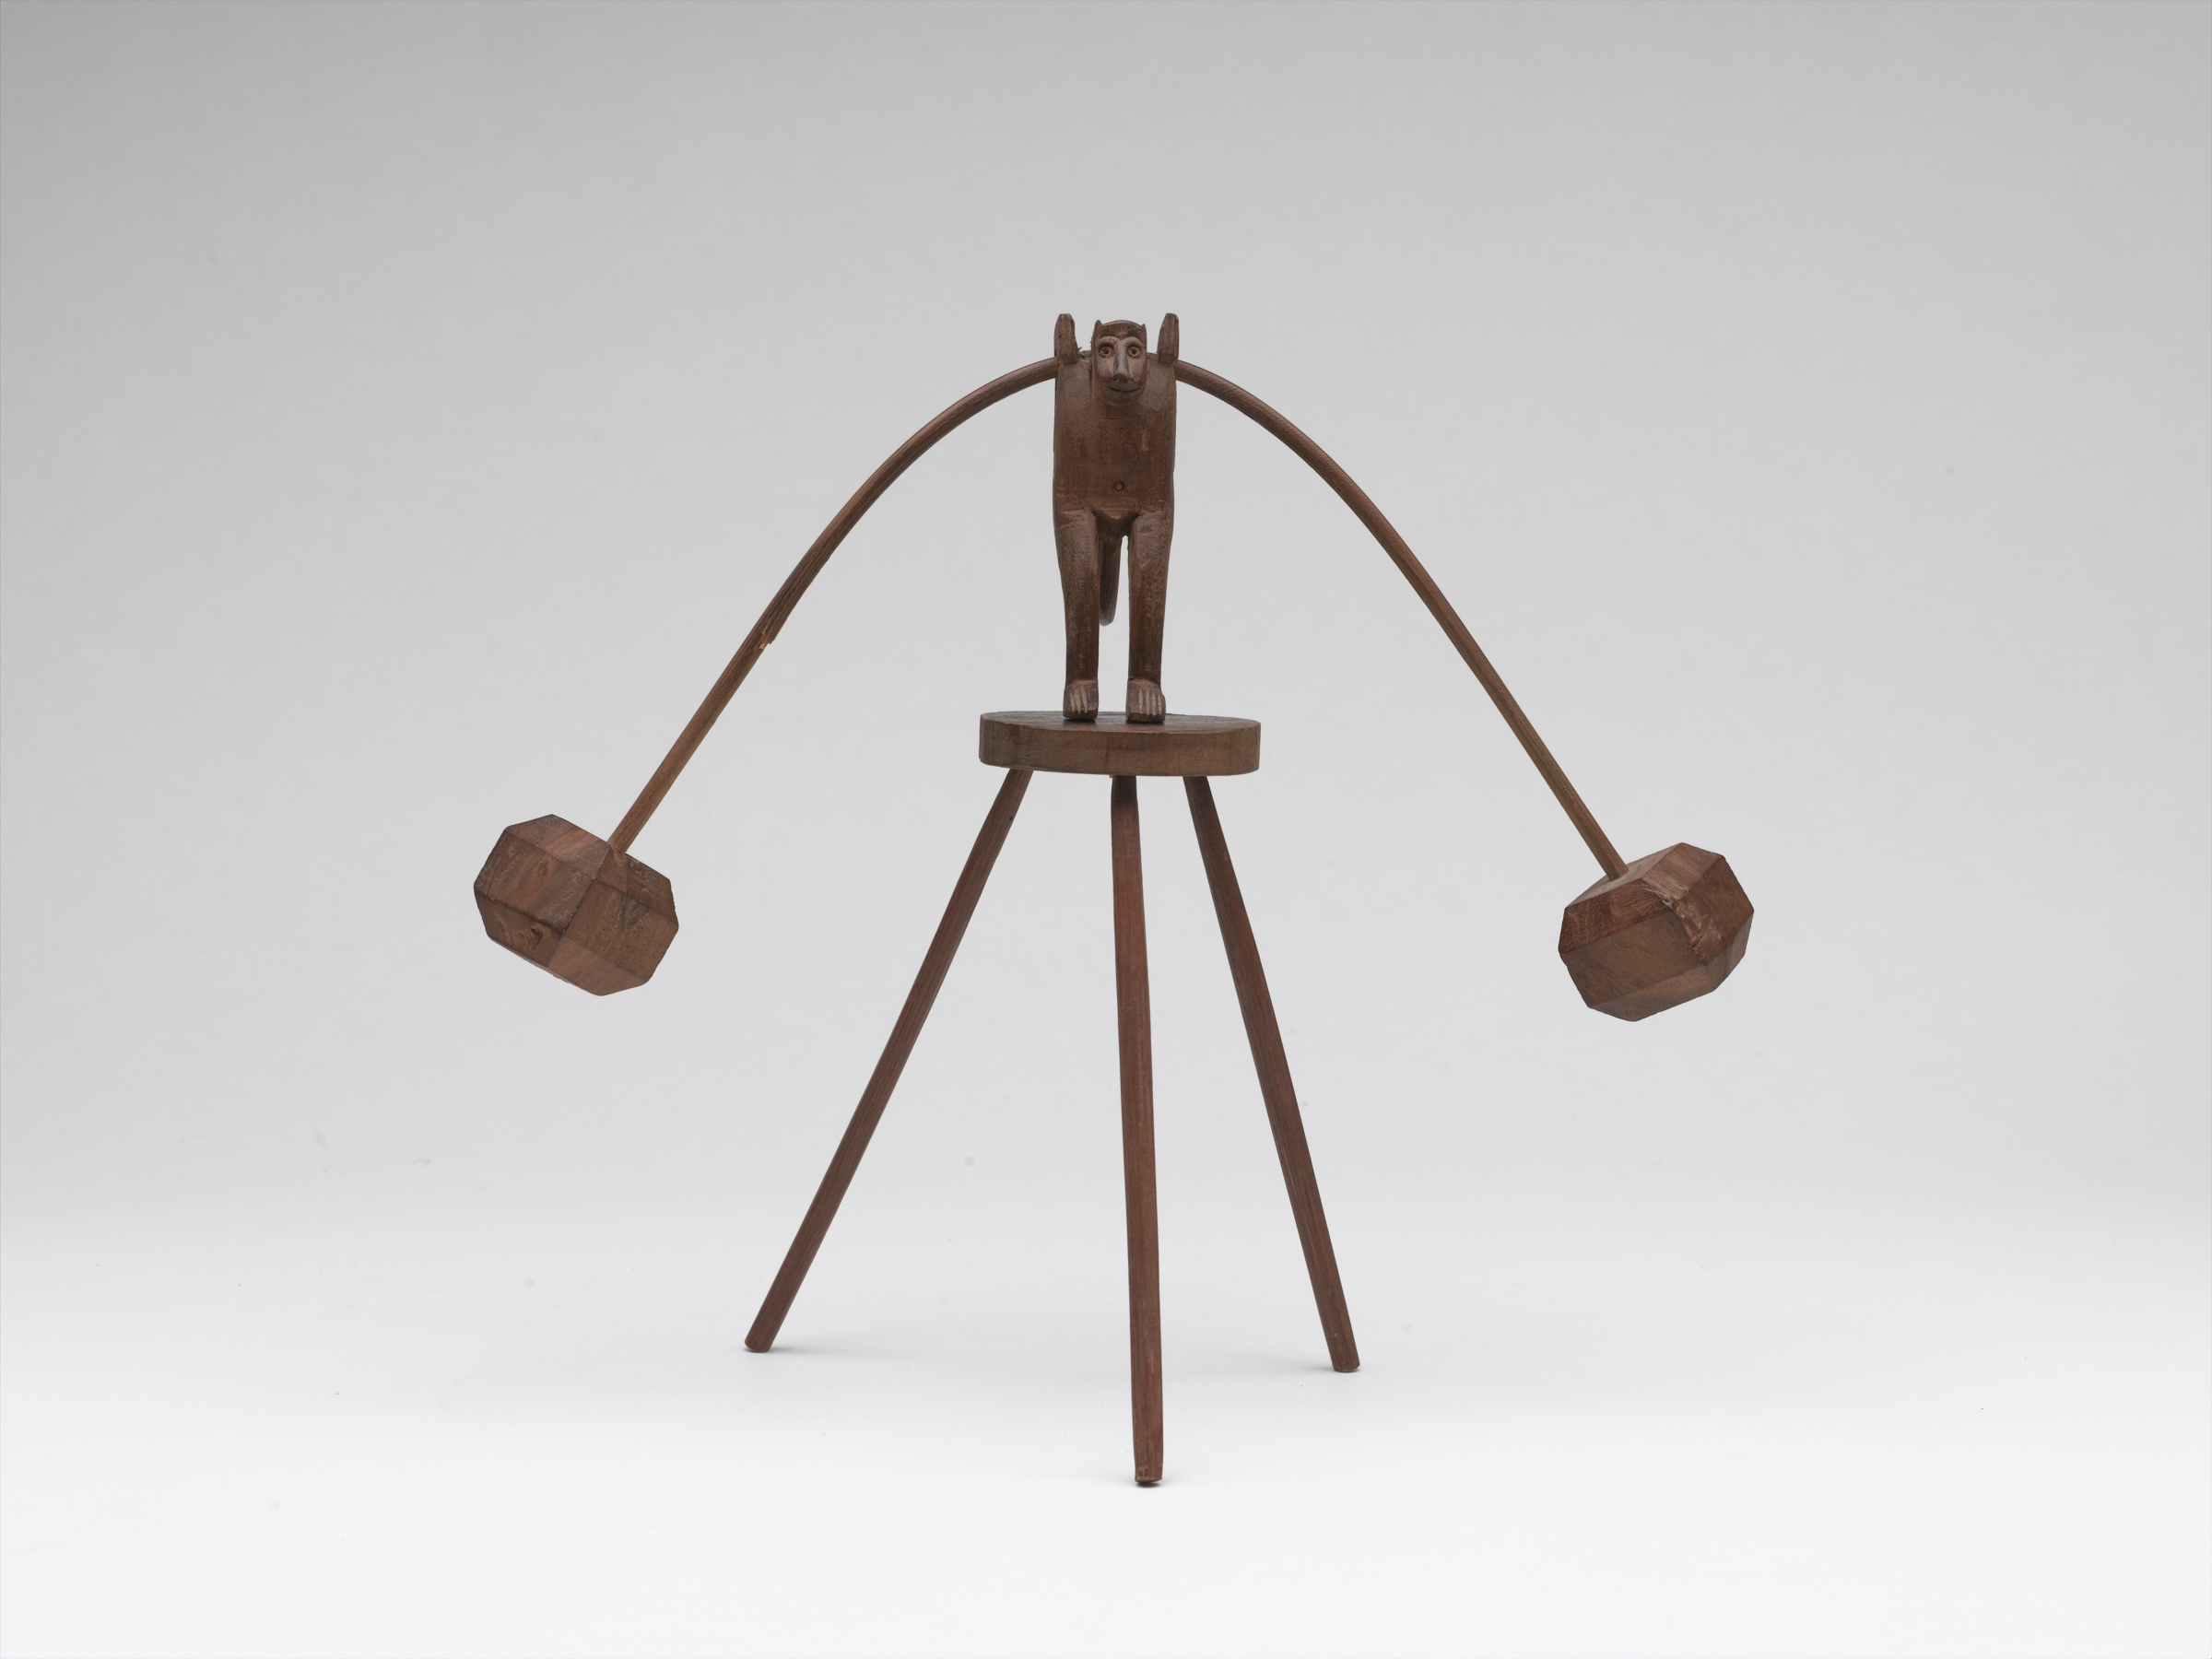 Balancing20toy2C20a20monkey20on20a20stool2C2018112C2028c2920National20Army20Museum-8a5cfbc